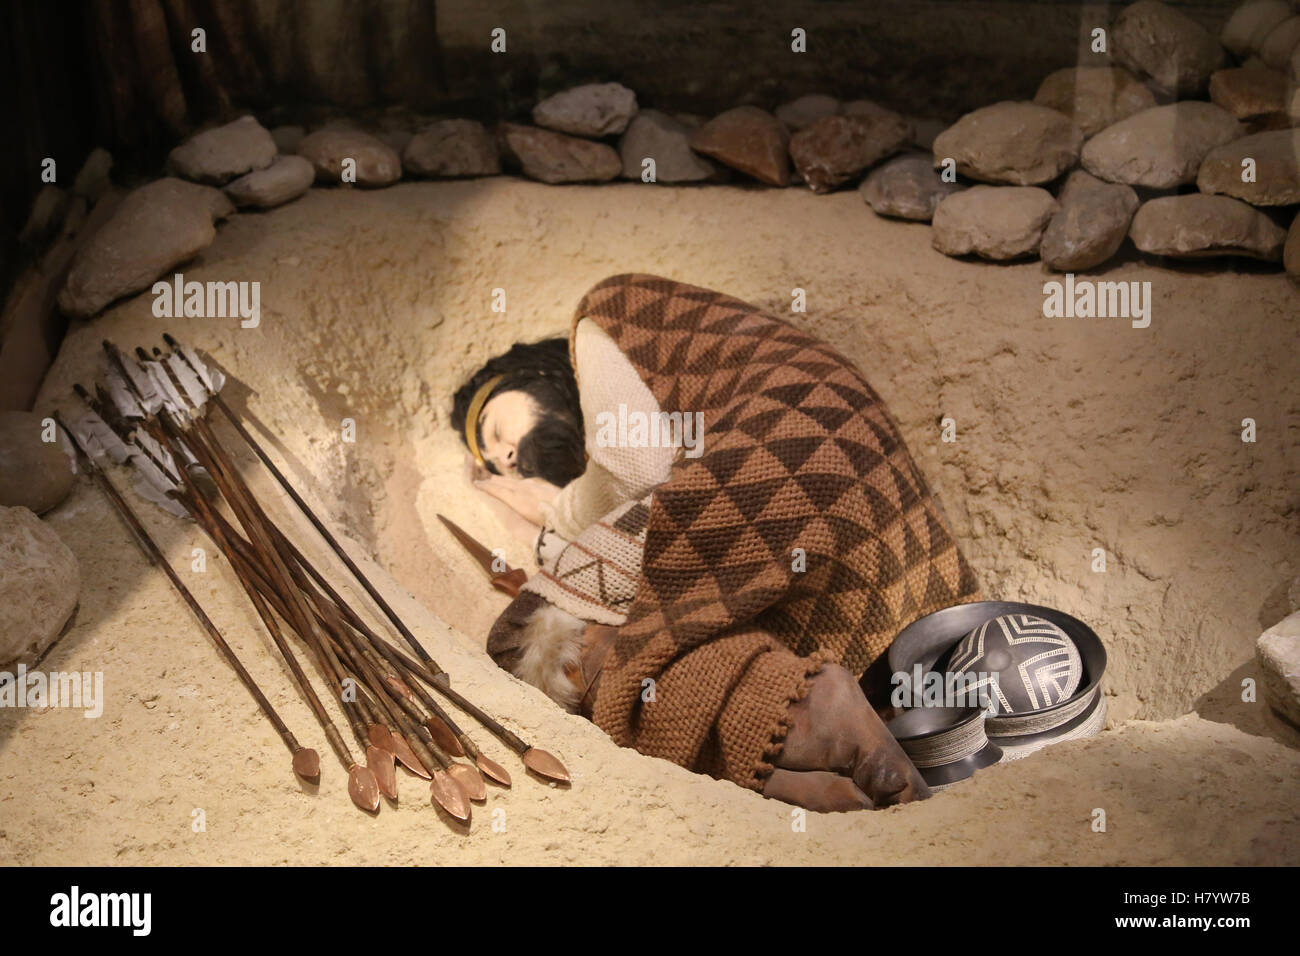 Beaker culture. Recreation of a Beaker grave of a young male at Fuente Olmedo (Valladolid). Burial with grave goods. Stock Photo